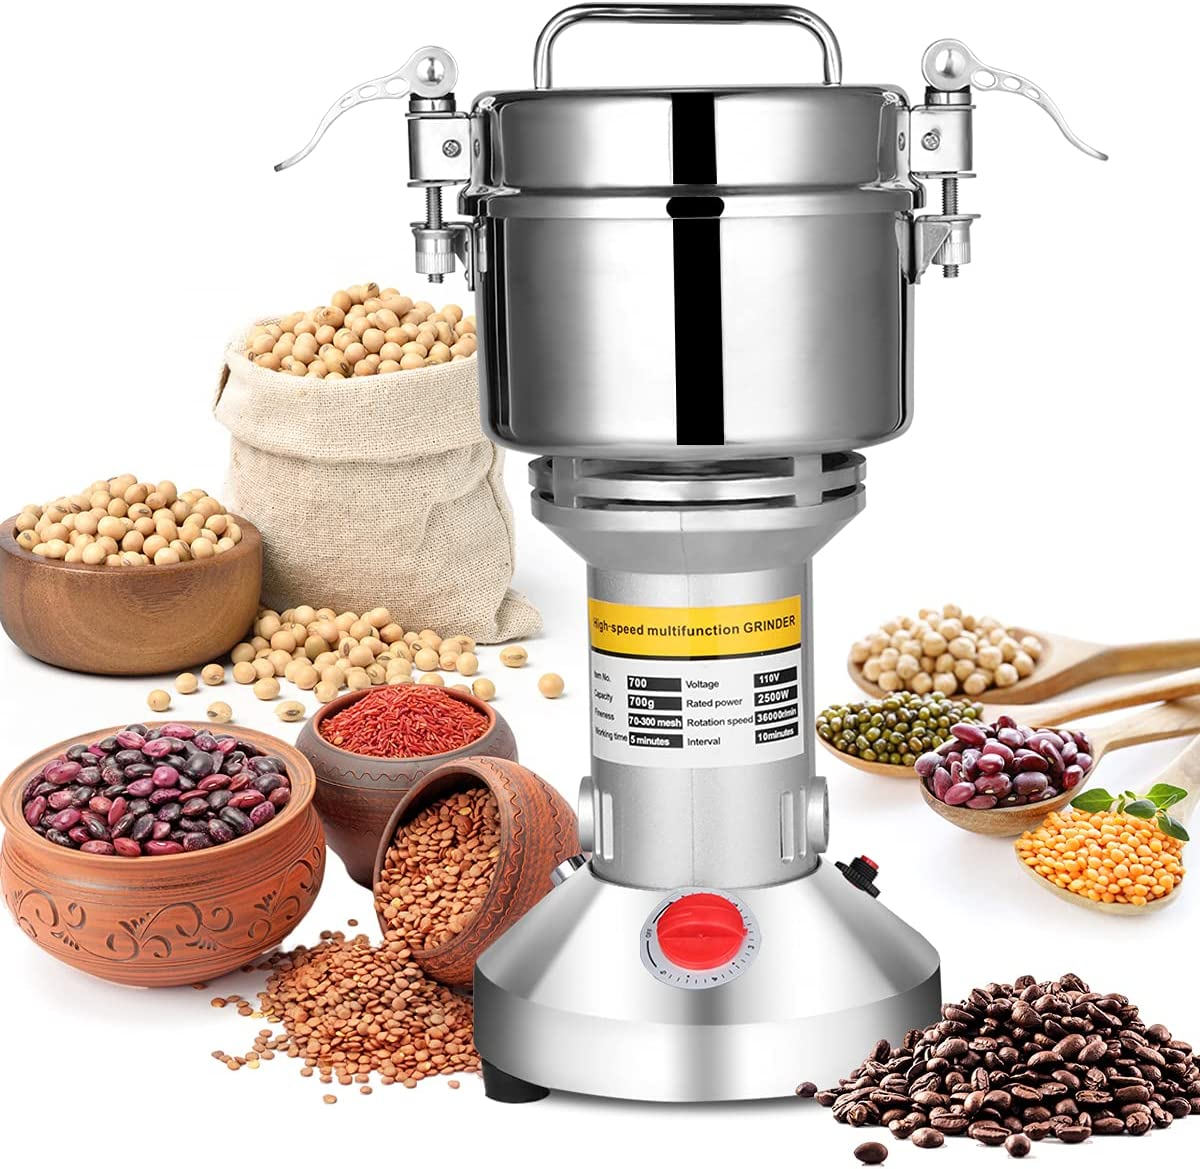 Max 81% OFF Max 61% OFF AILIXI 700g Grain Mill Grinder Electric Speed High Stainl 2500W